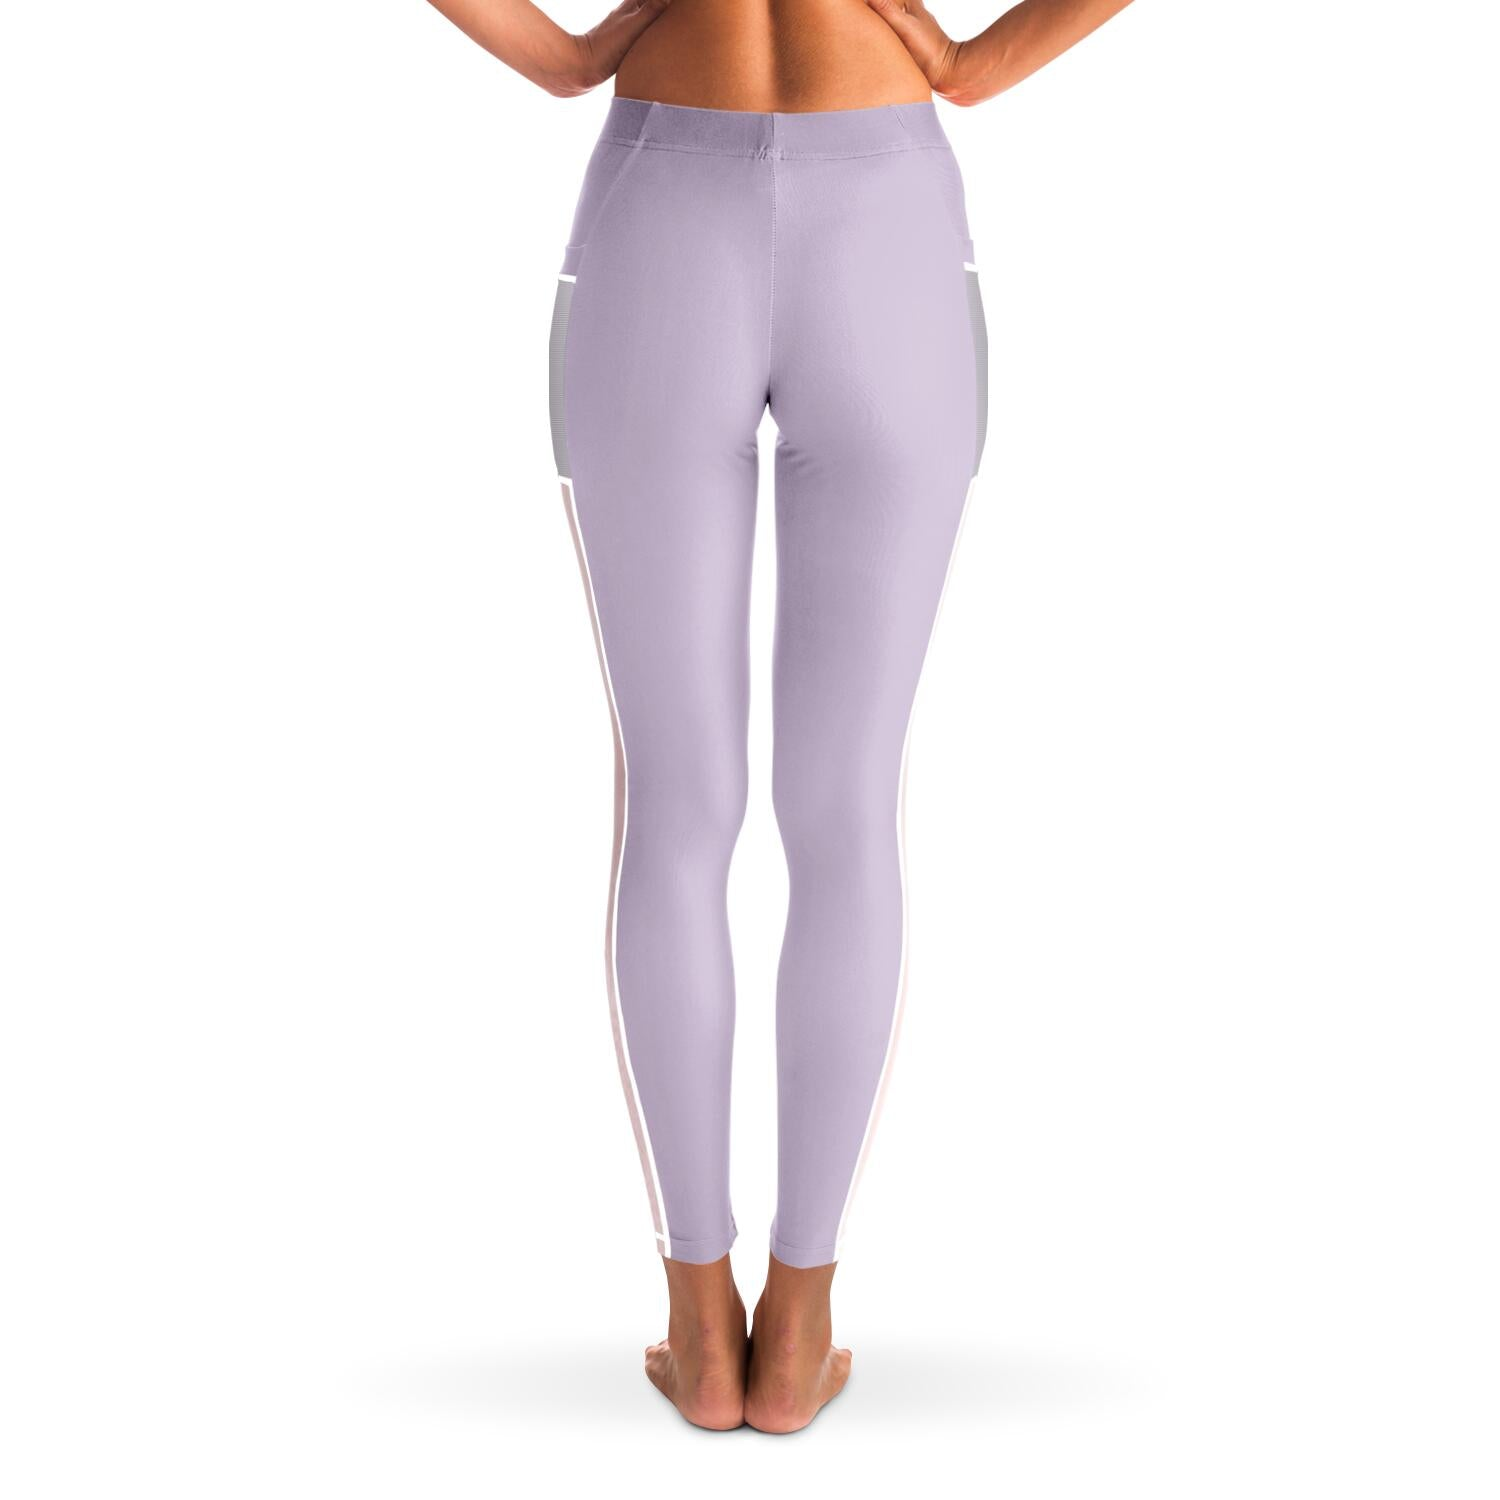 Basic Purple Yoga Pants with Mesh